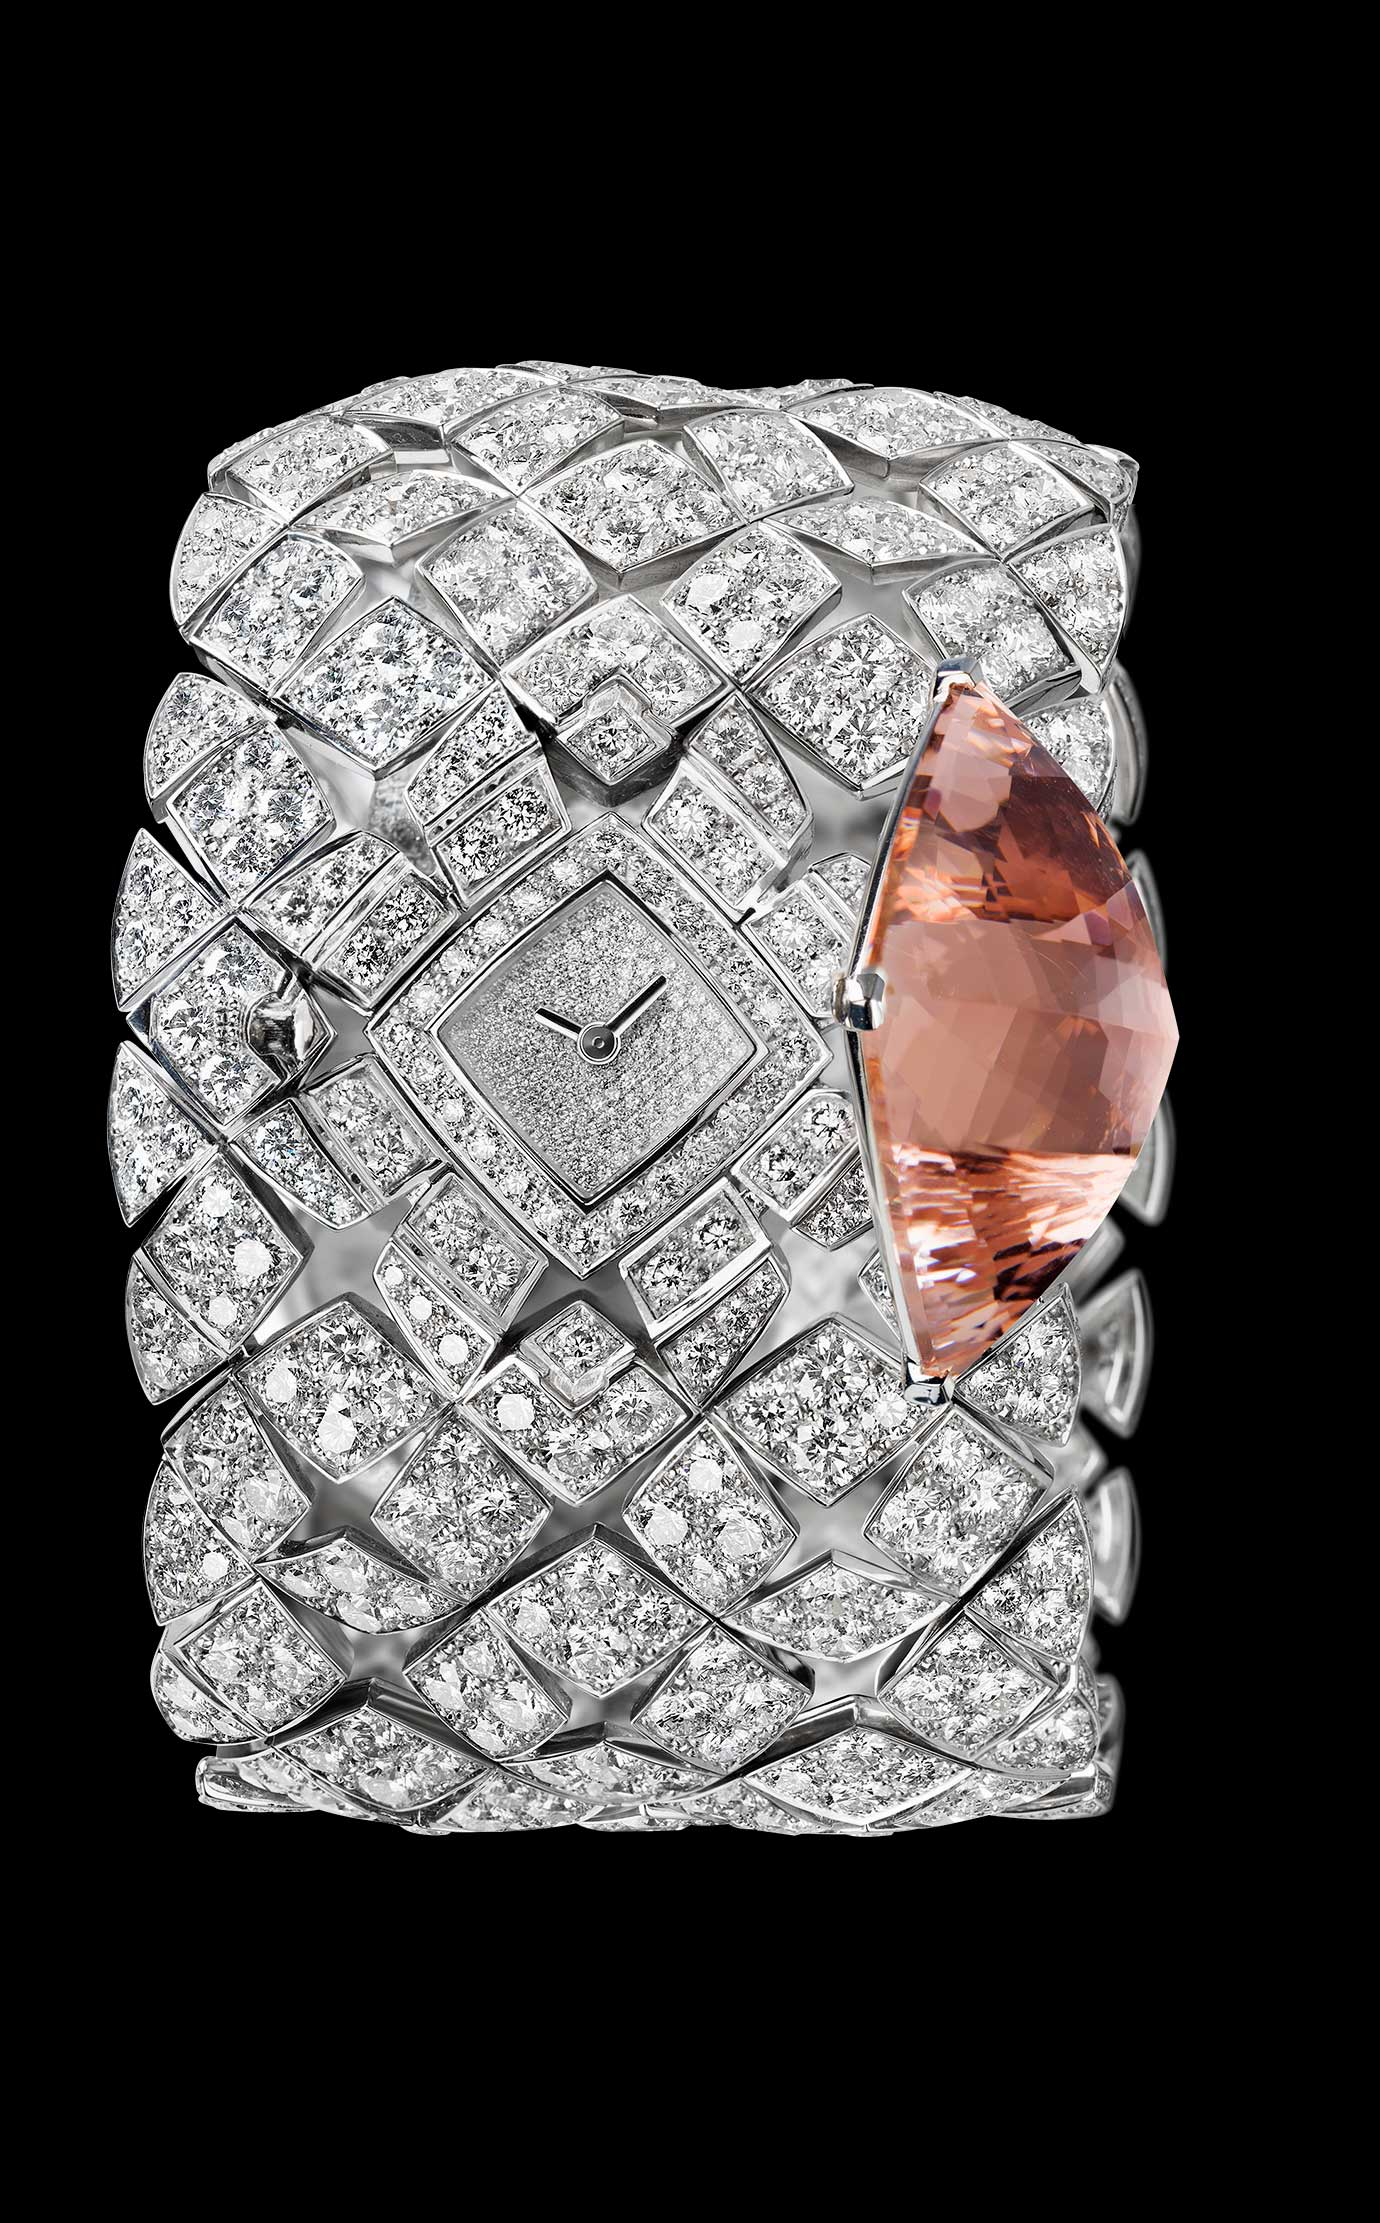 Les Eternelles de CHANEL. Secret cuff watch in 18K white gold. 43.64-carat pink morganite pyramid. - Open - Enlarged view